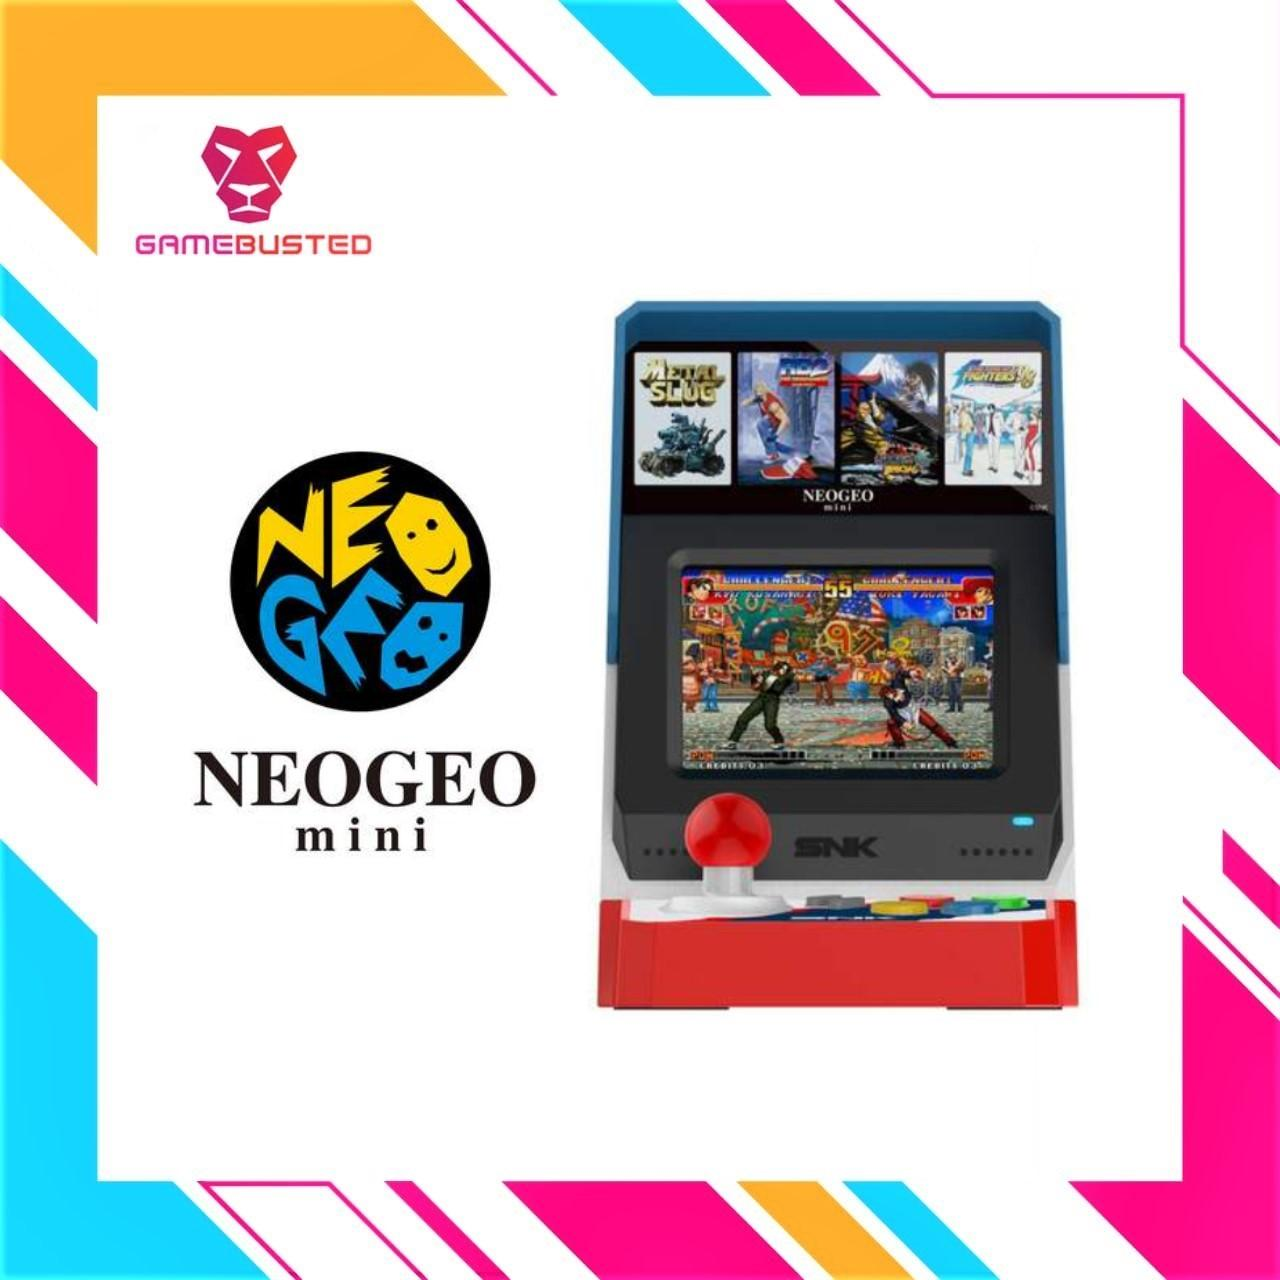 NeoGeo SNK 40th Anniversary Mini Console (In stock now)